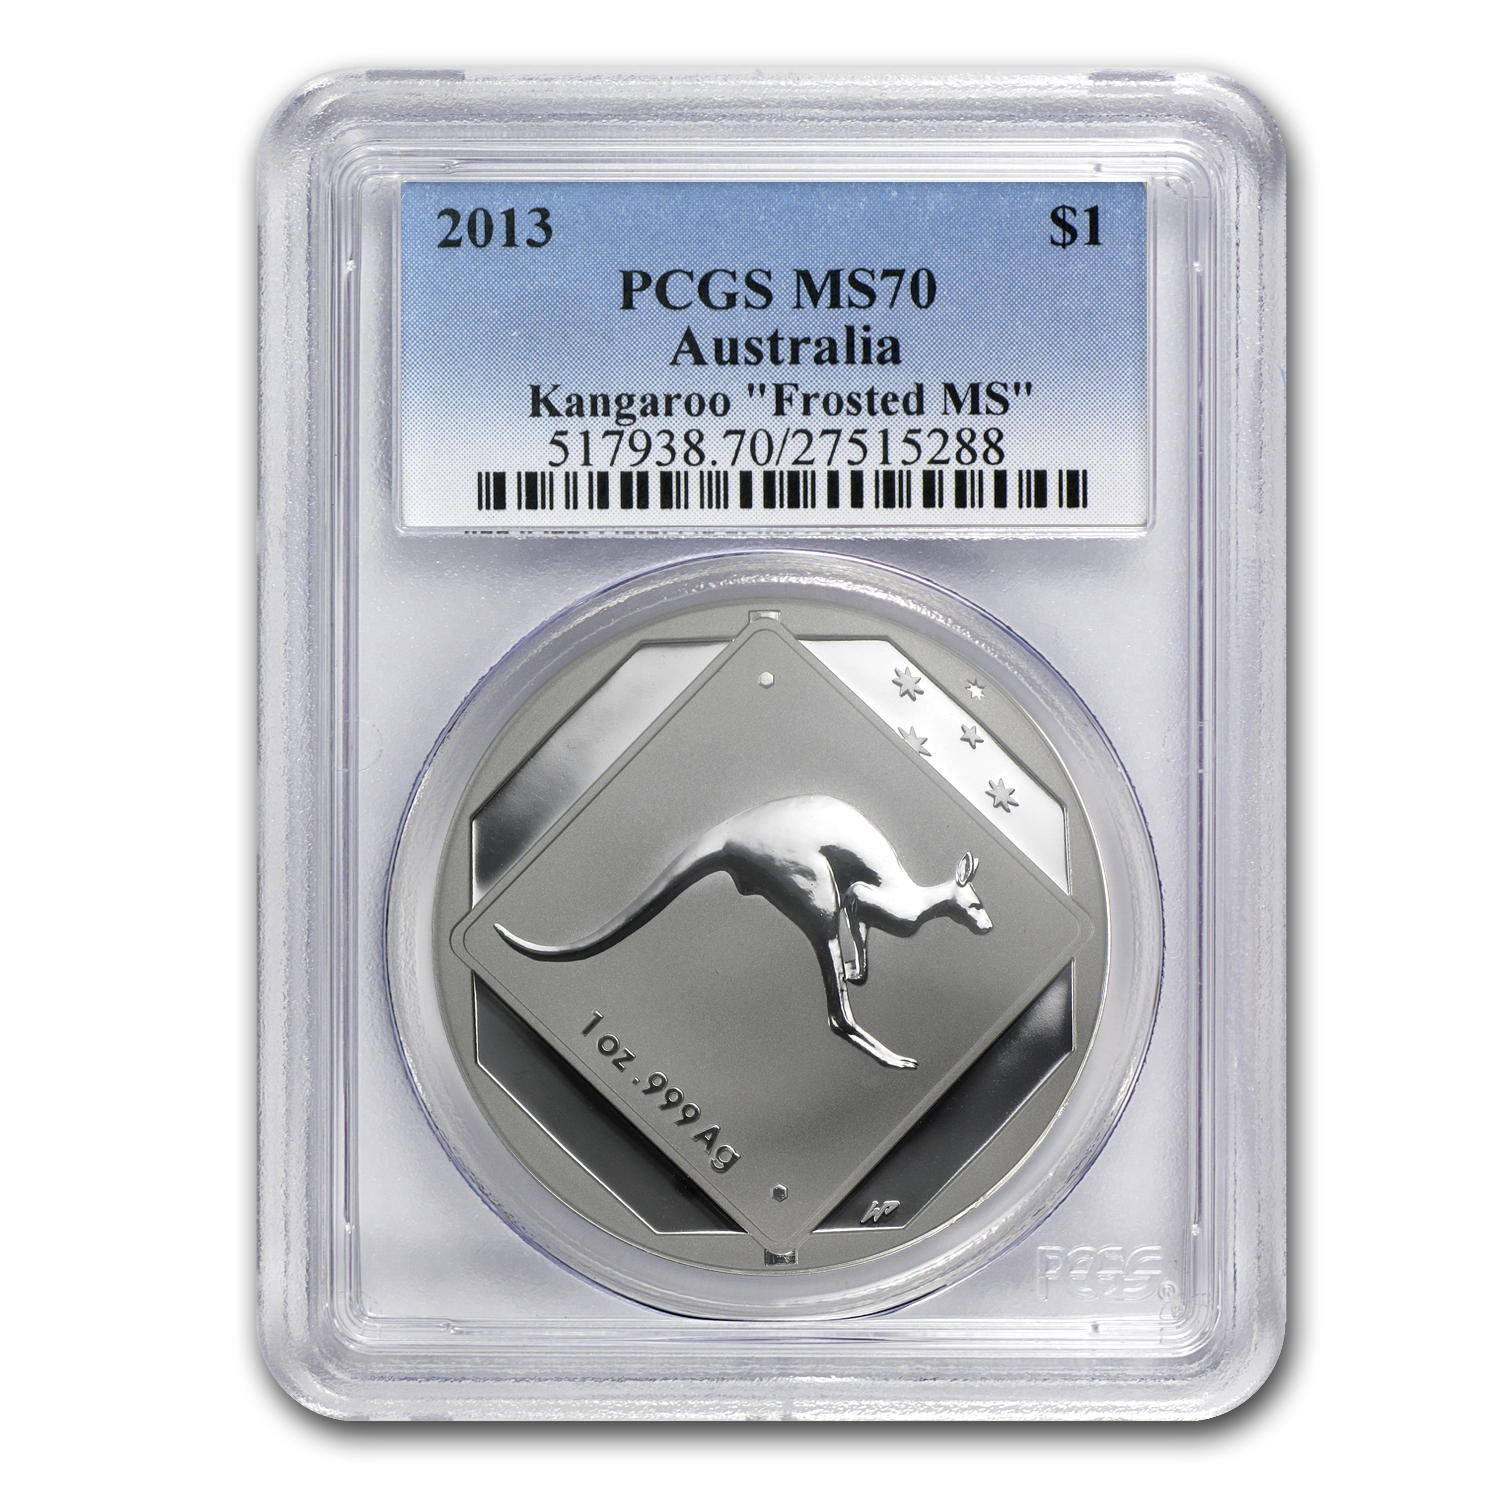 2013 Australia 1 oz Silver Kangaroo Road Sign MS-70 PCGS